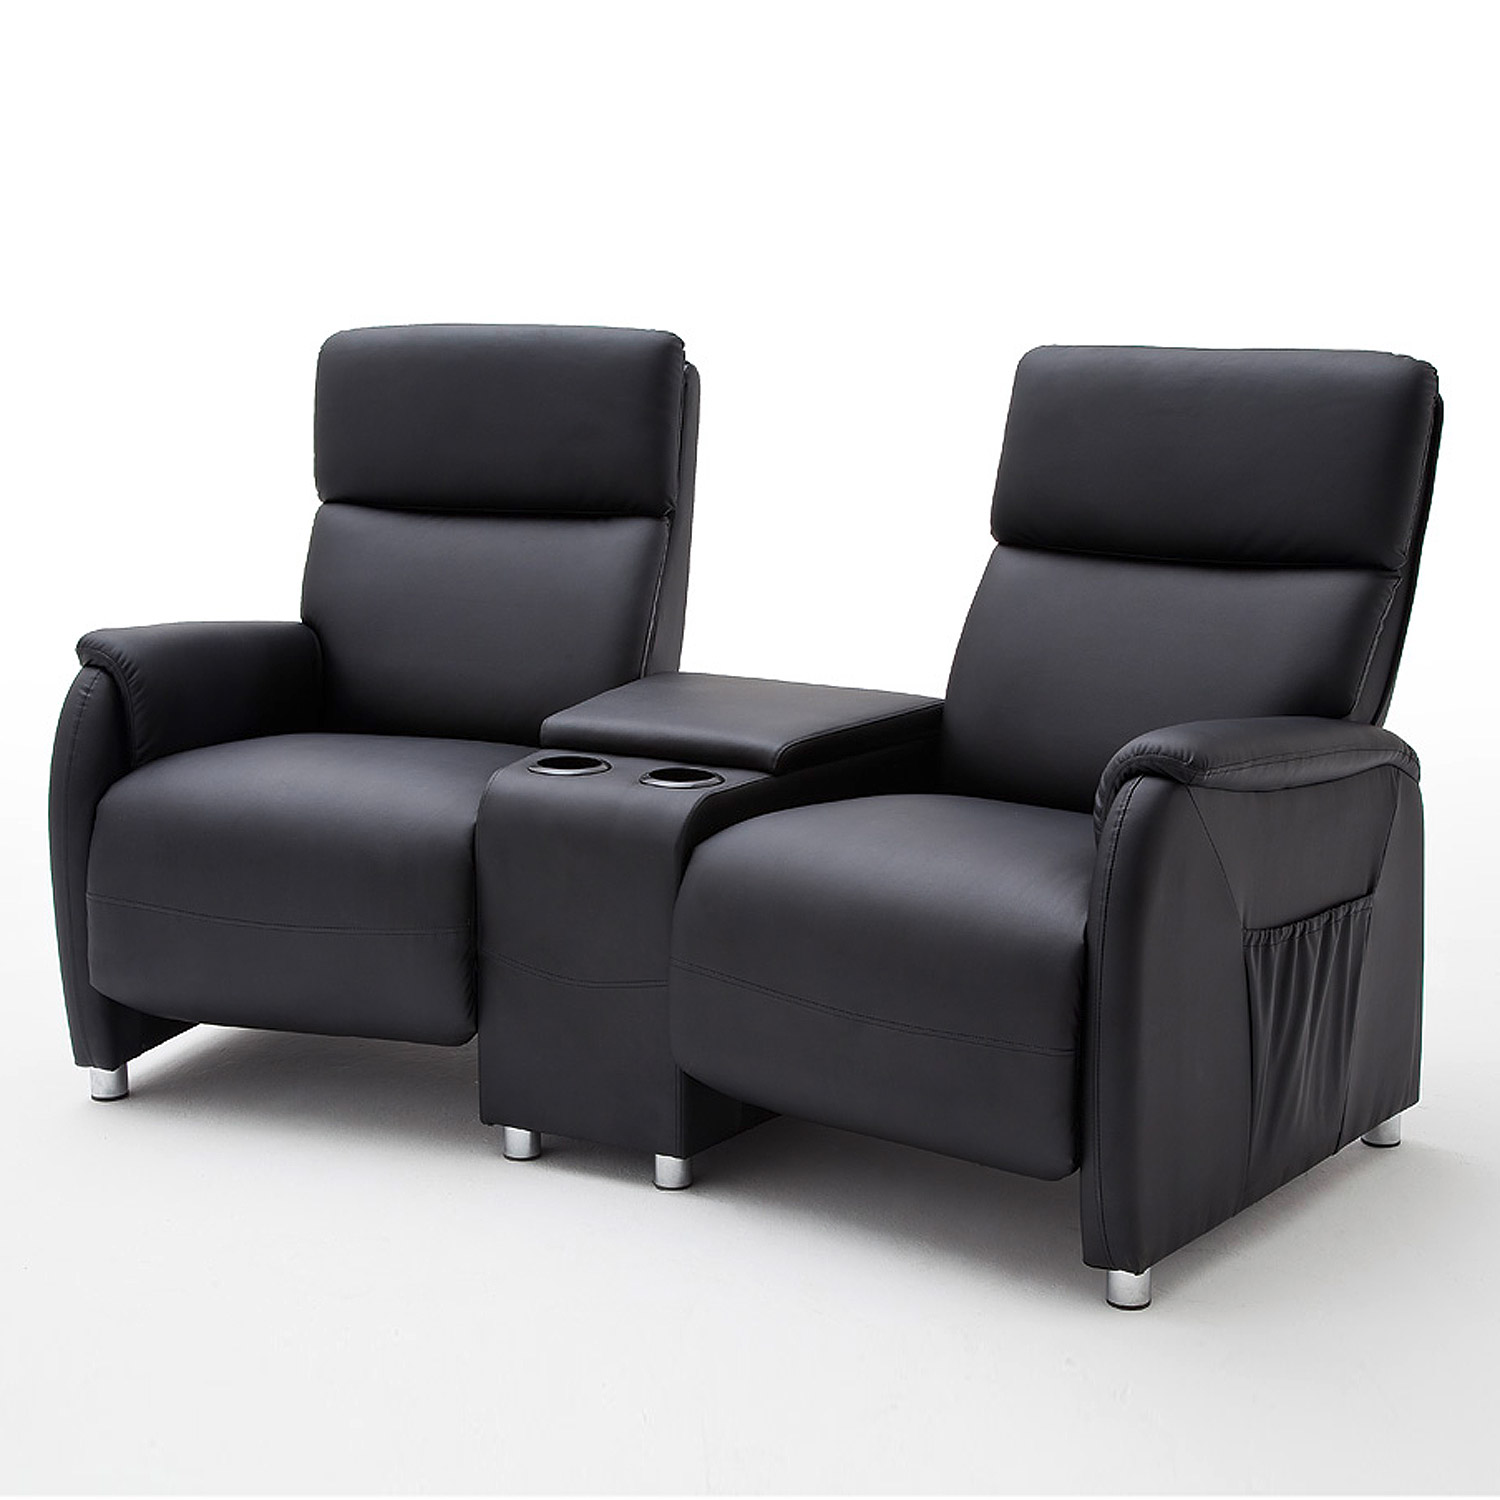 kino 2er sessel dani cinema sofa lederlook schwarz mit getr nkehalter ebay. Black Bedroom Furniture Sets. Home Design Ideas